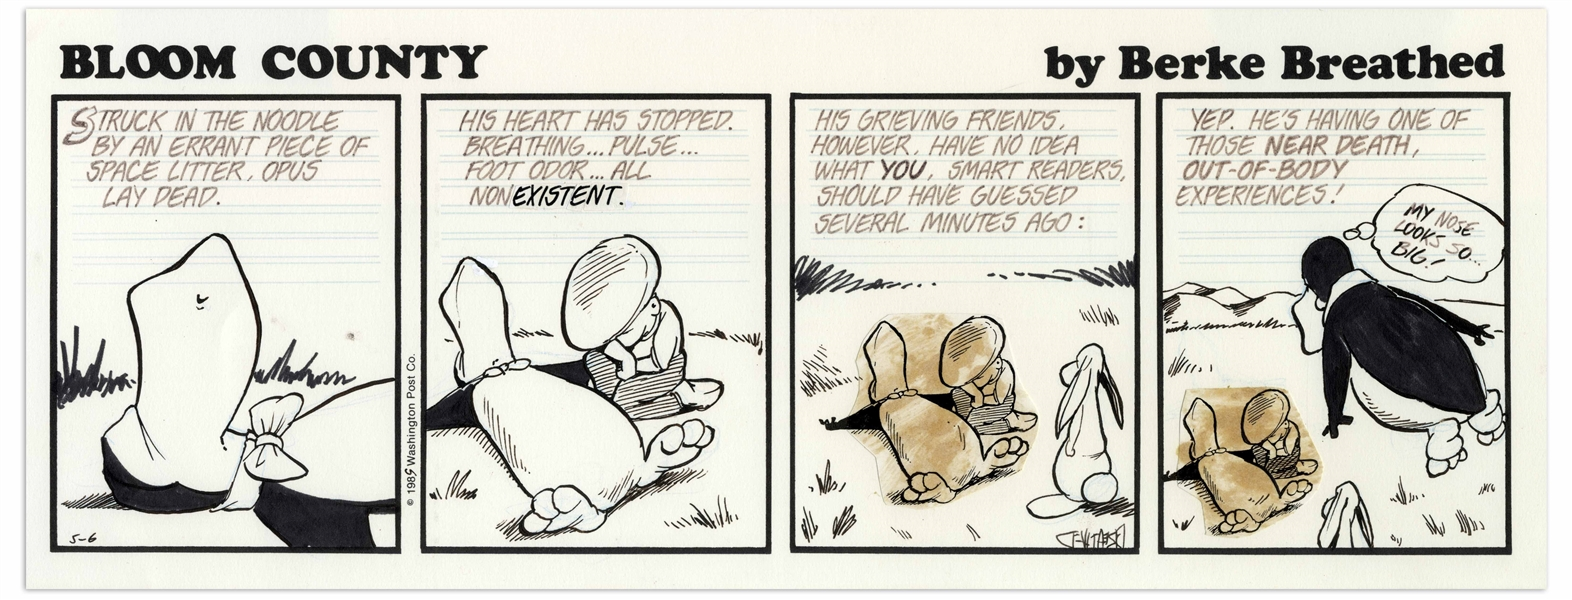 Berke Breathed Original Hand-Drawn Comic Strip for ''Bloom County'' -- Opus Has a Near Death Experience